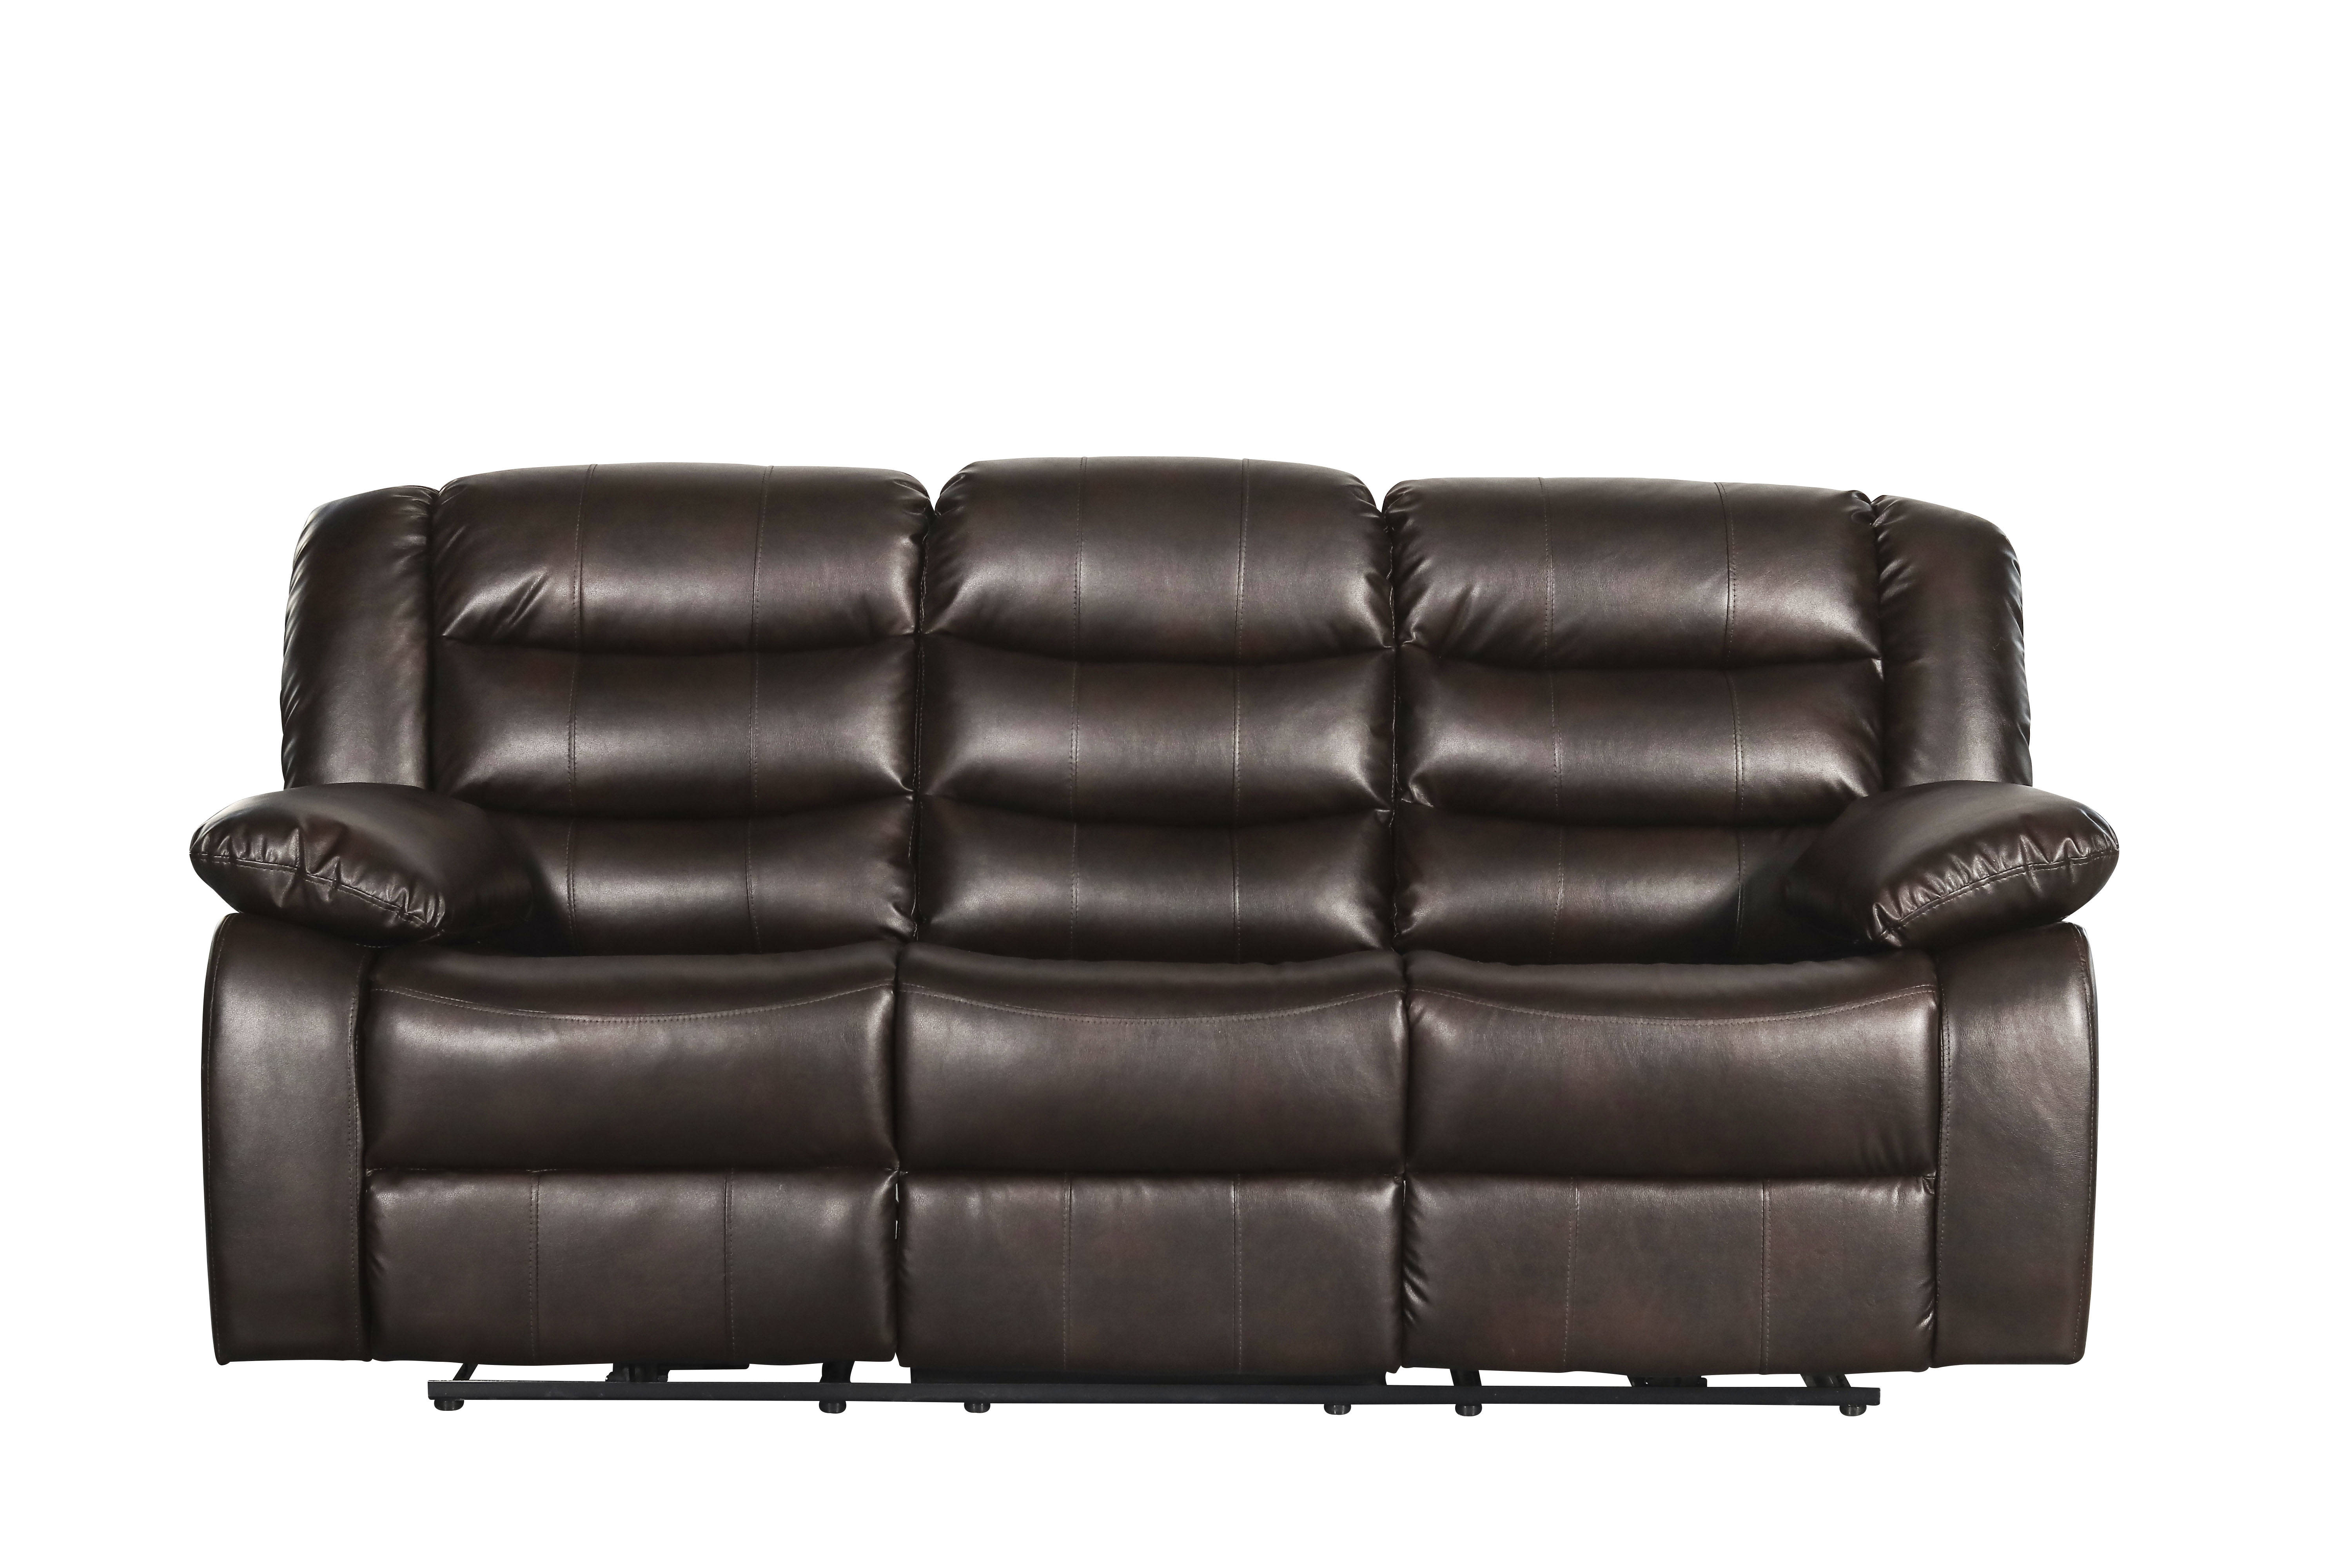 Enjoyable Standard Furniture Bennet Brown Power Sofa With Drop Down Table Gmtry Best Dining Table And Chair Ideas Images Gmtryco